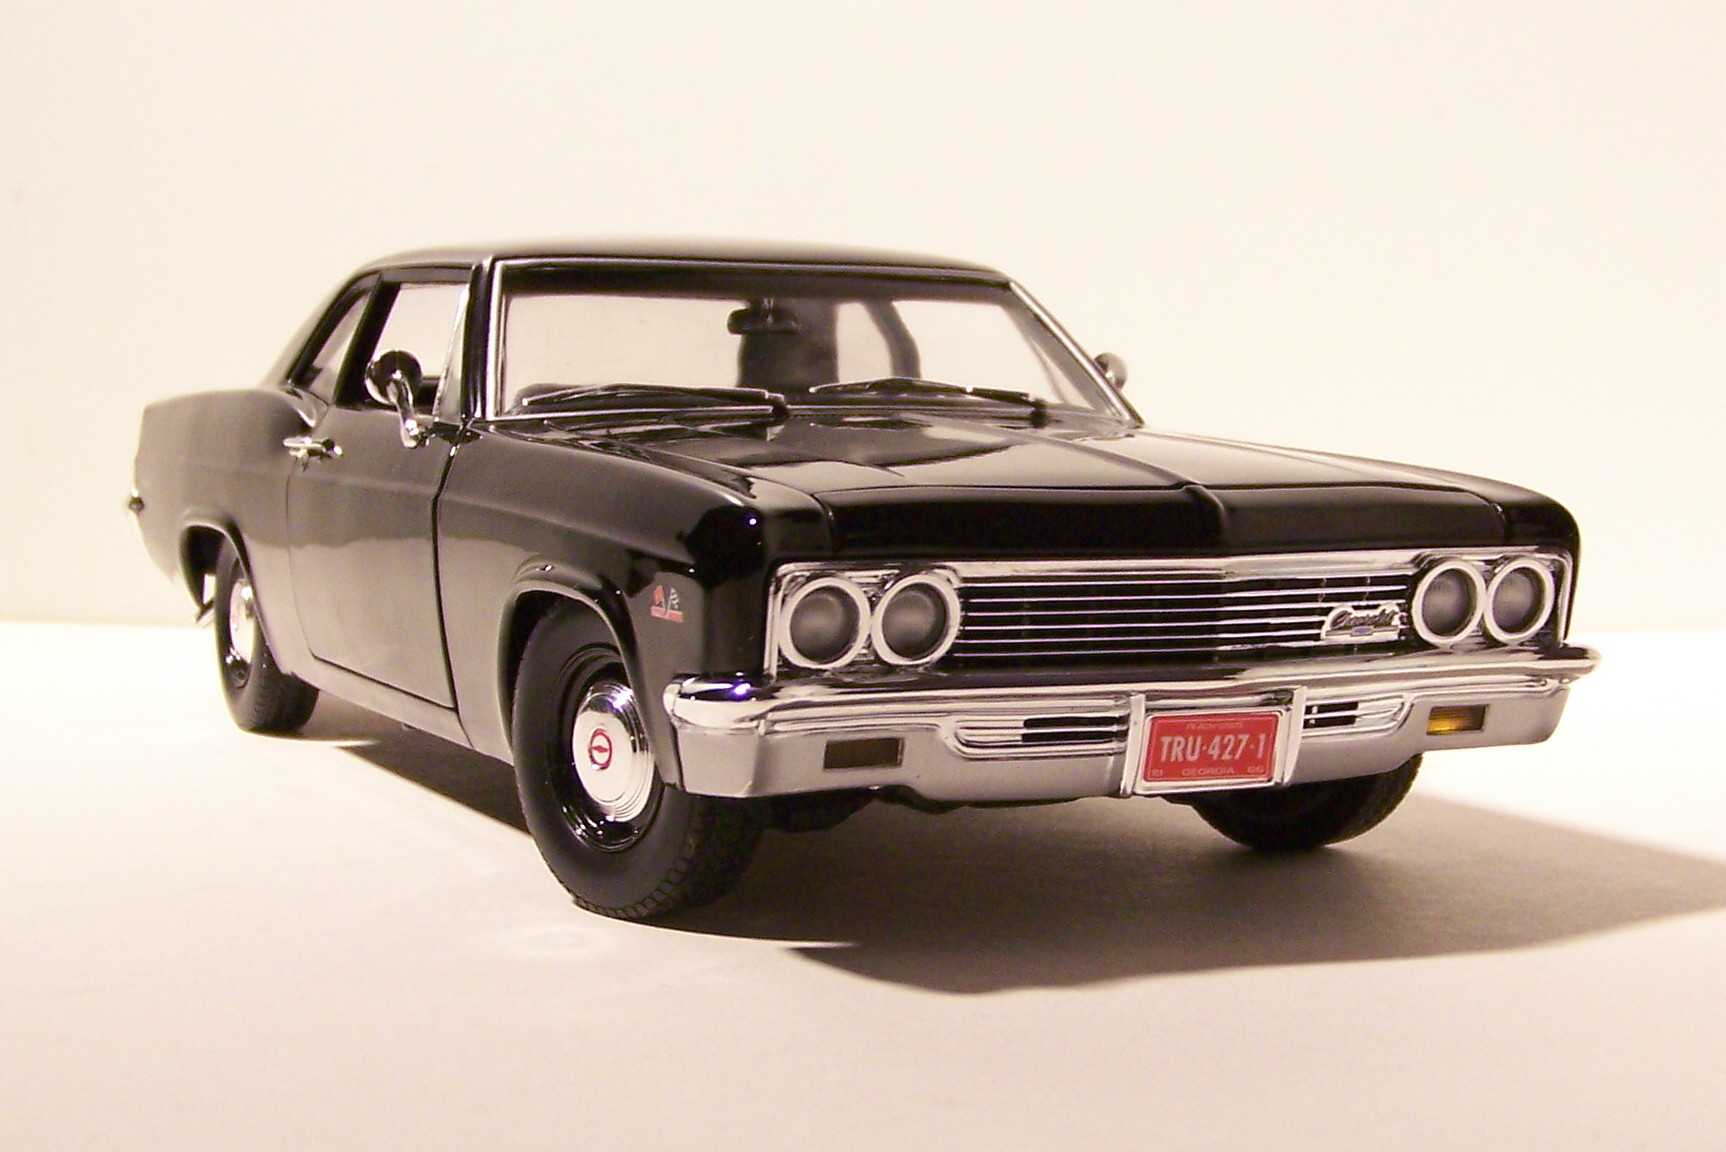 Chevrolet Biscayne 1966 | Flickr - Photo Sharing!